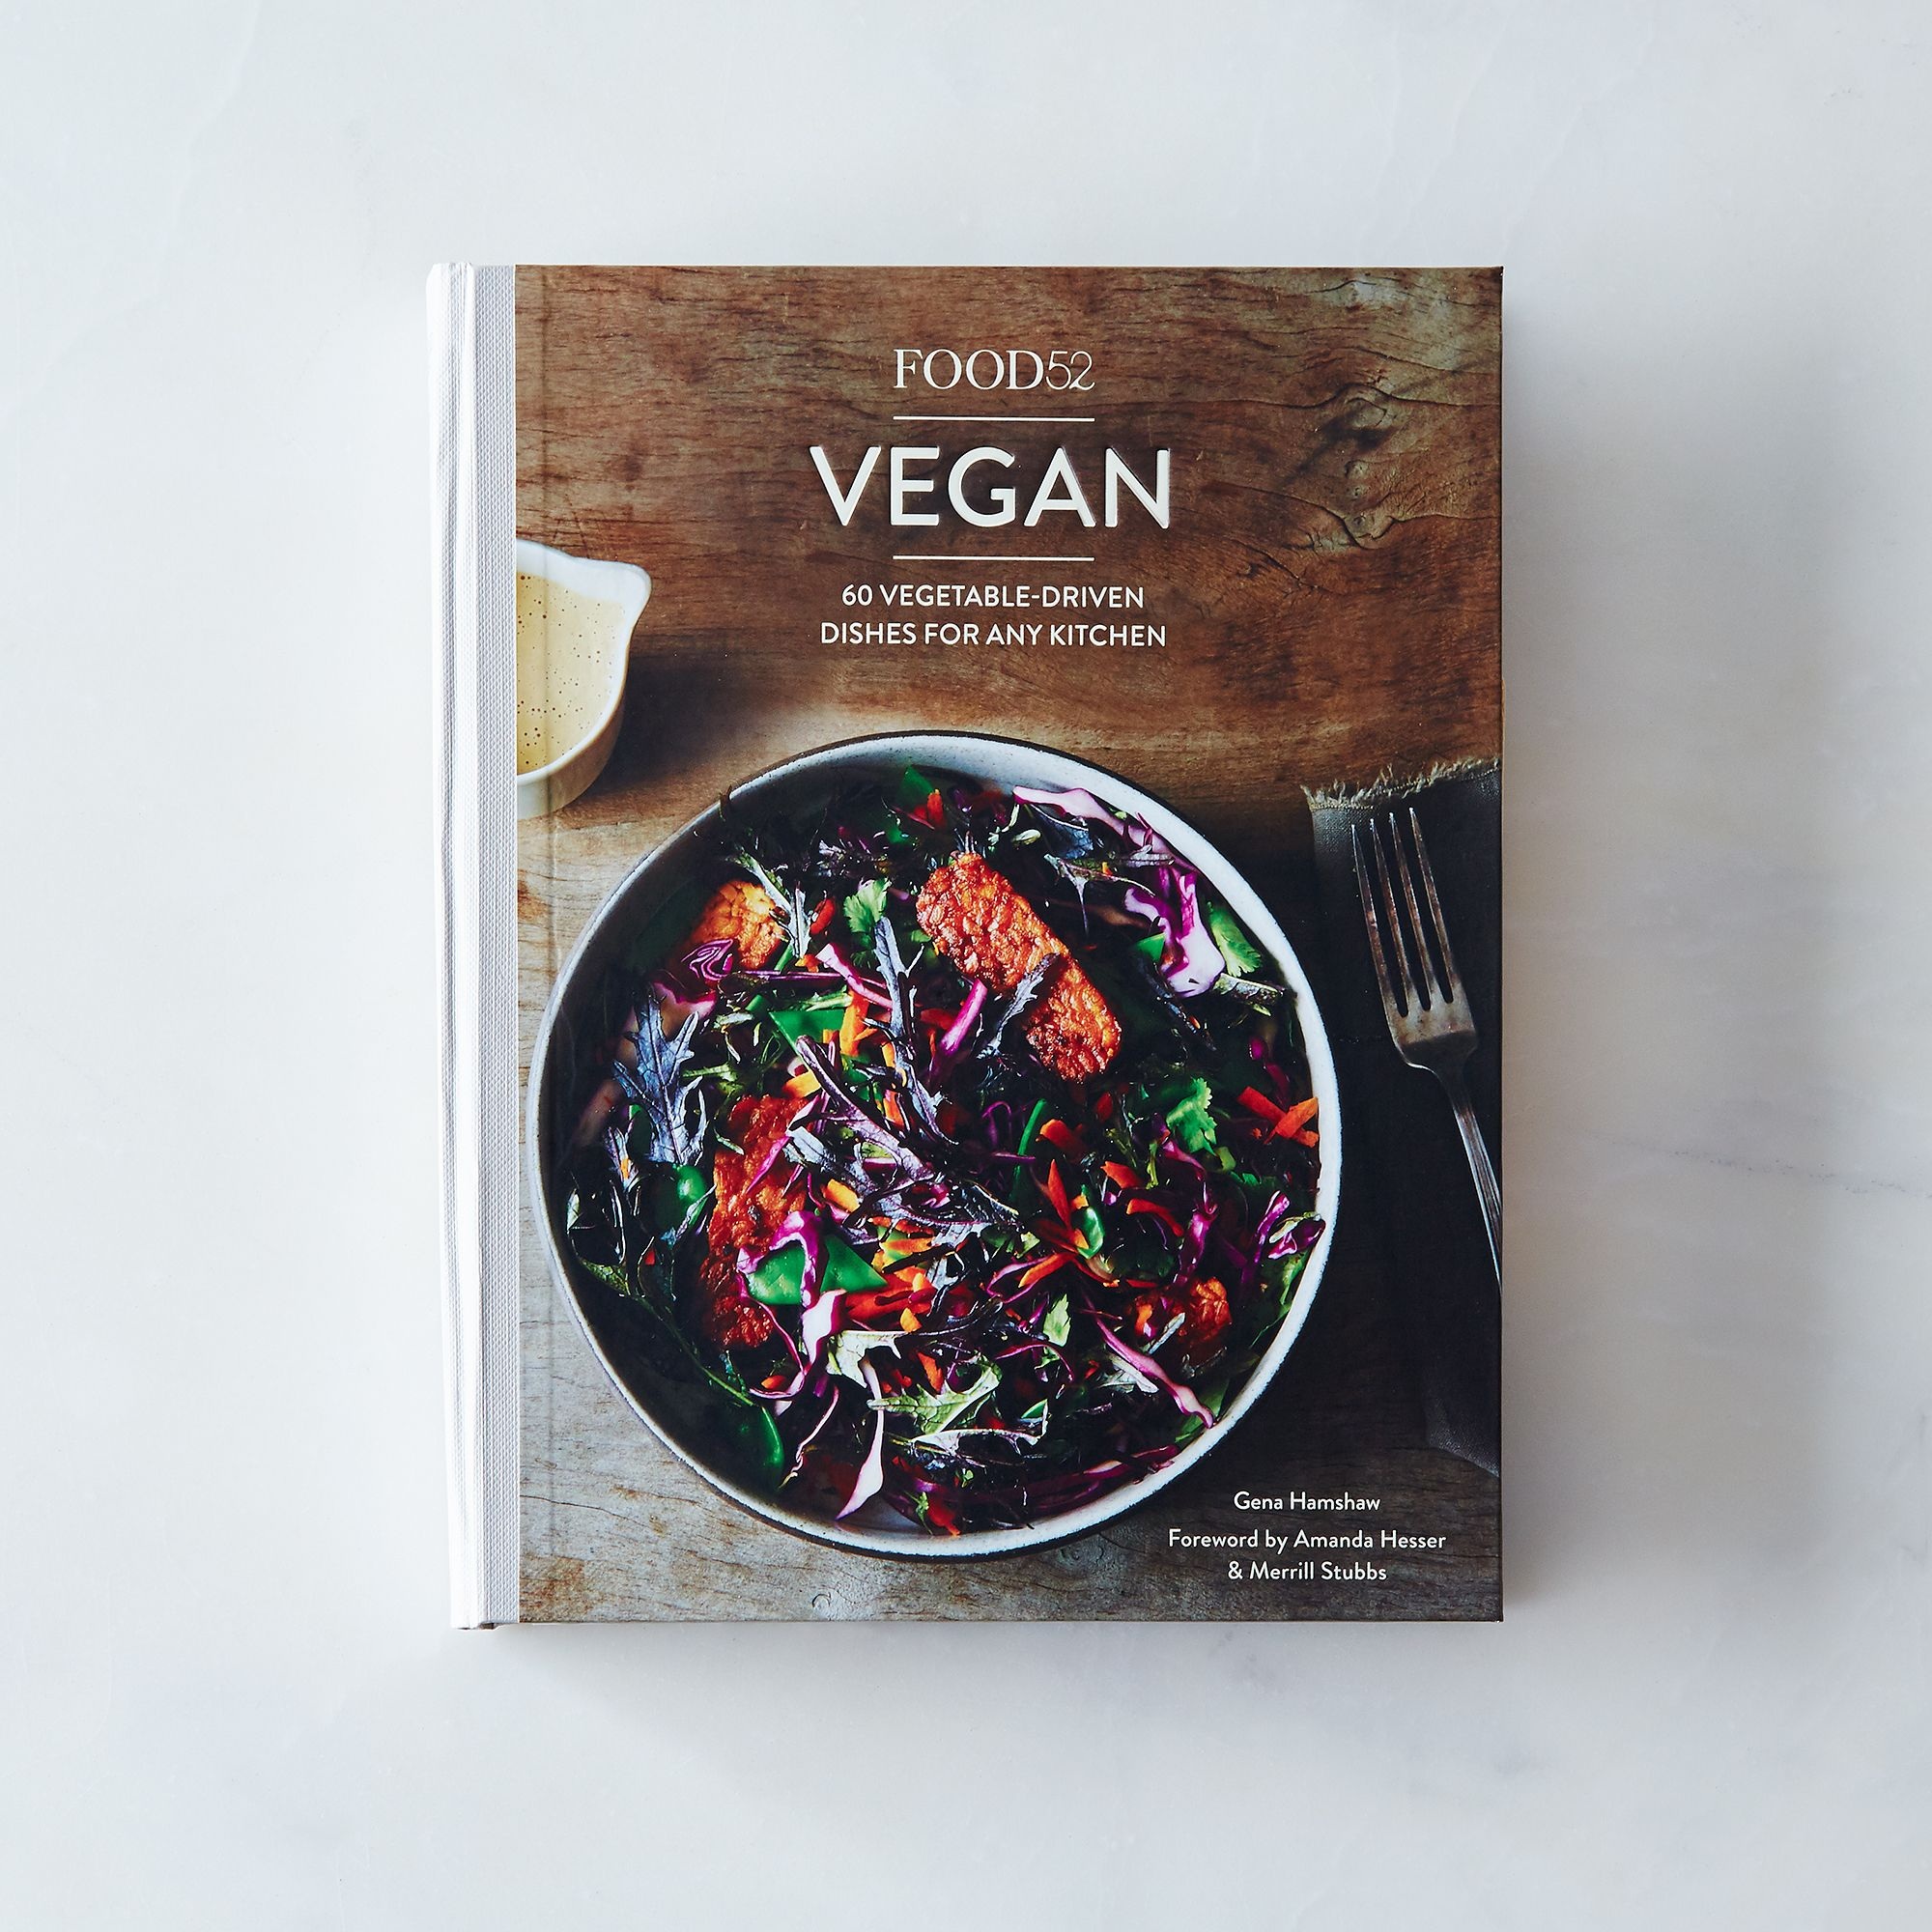 7269cc86 a0f8 11e5 a190 0ef7535729df  2015 0527 food52 vegan book james ransom 014